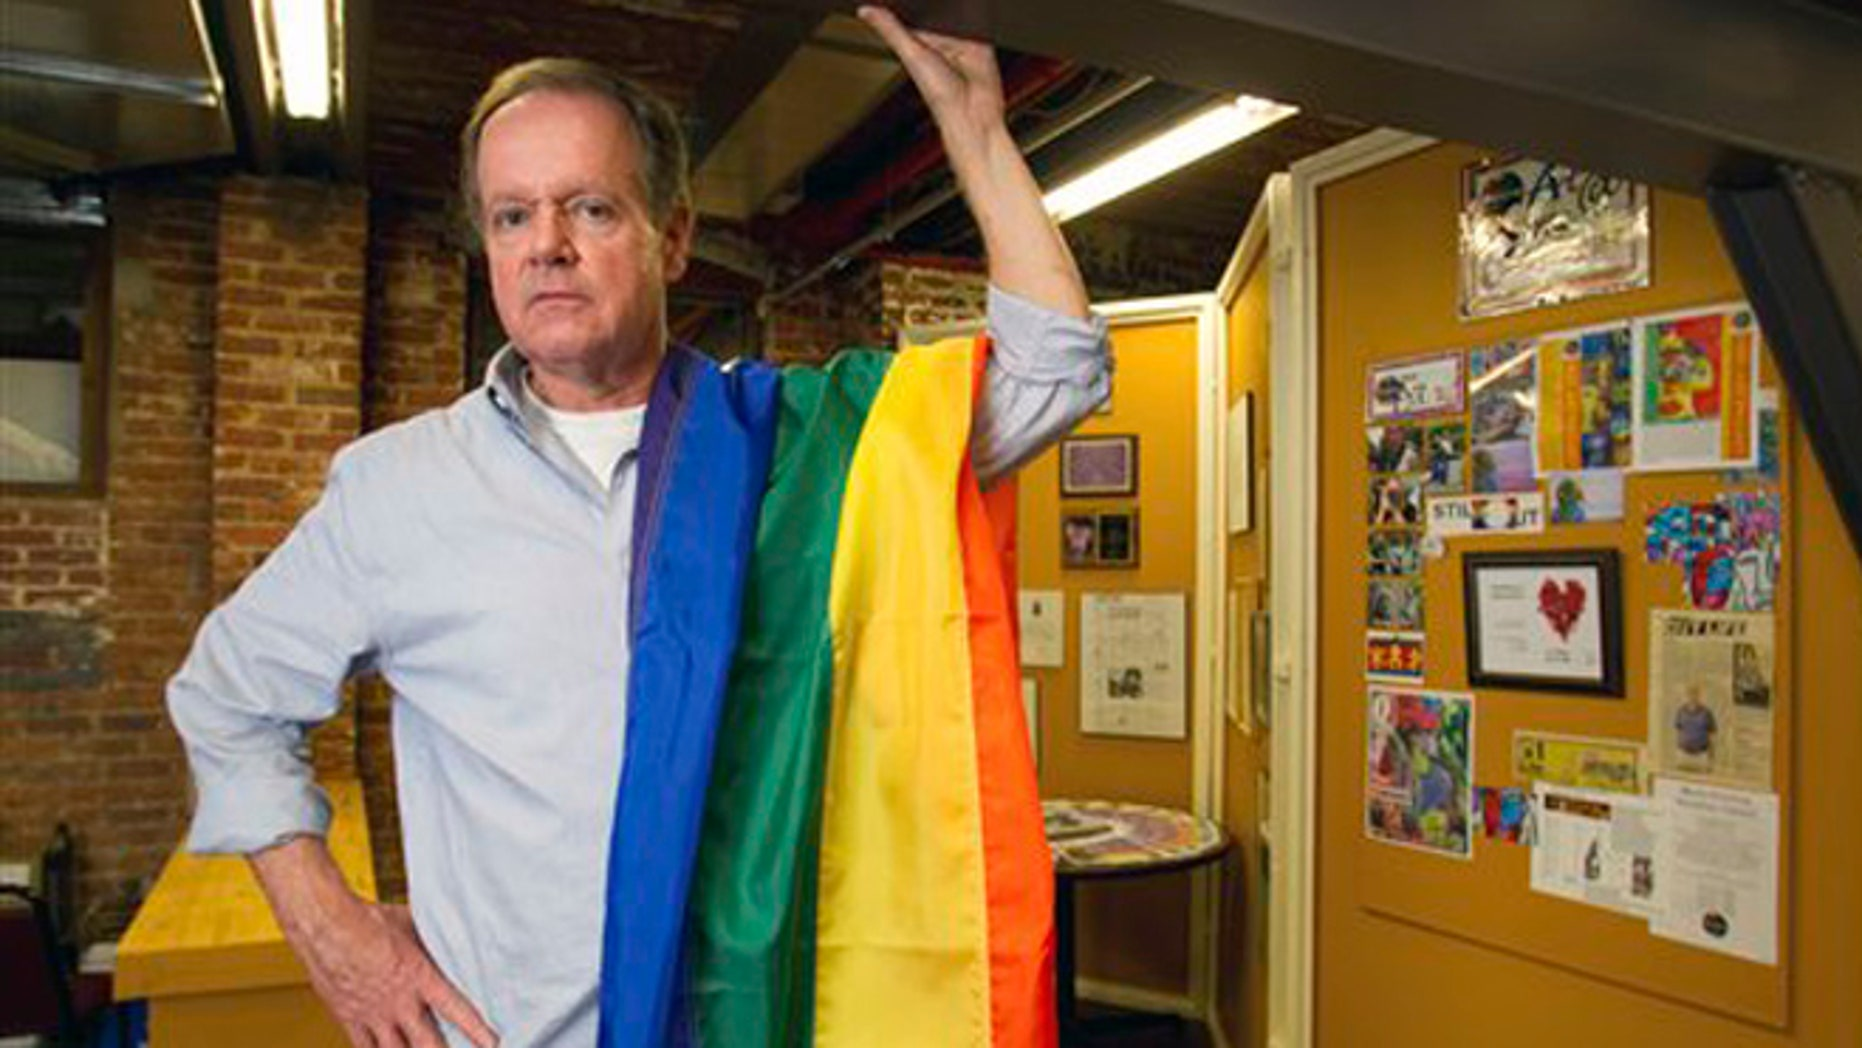 FILE: Aug. 20, 2012: Dave Webb, co-chair of the 2012 Pride Charlotte Festival, poses in the group's Charlotte, N.C. offices.